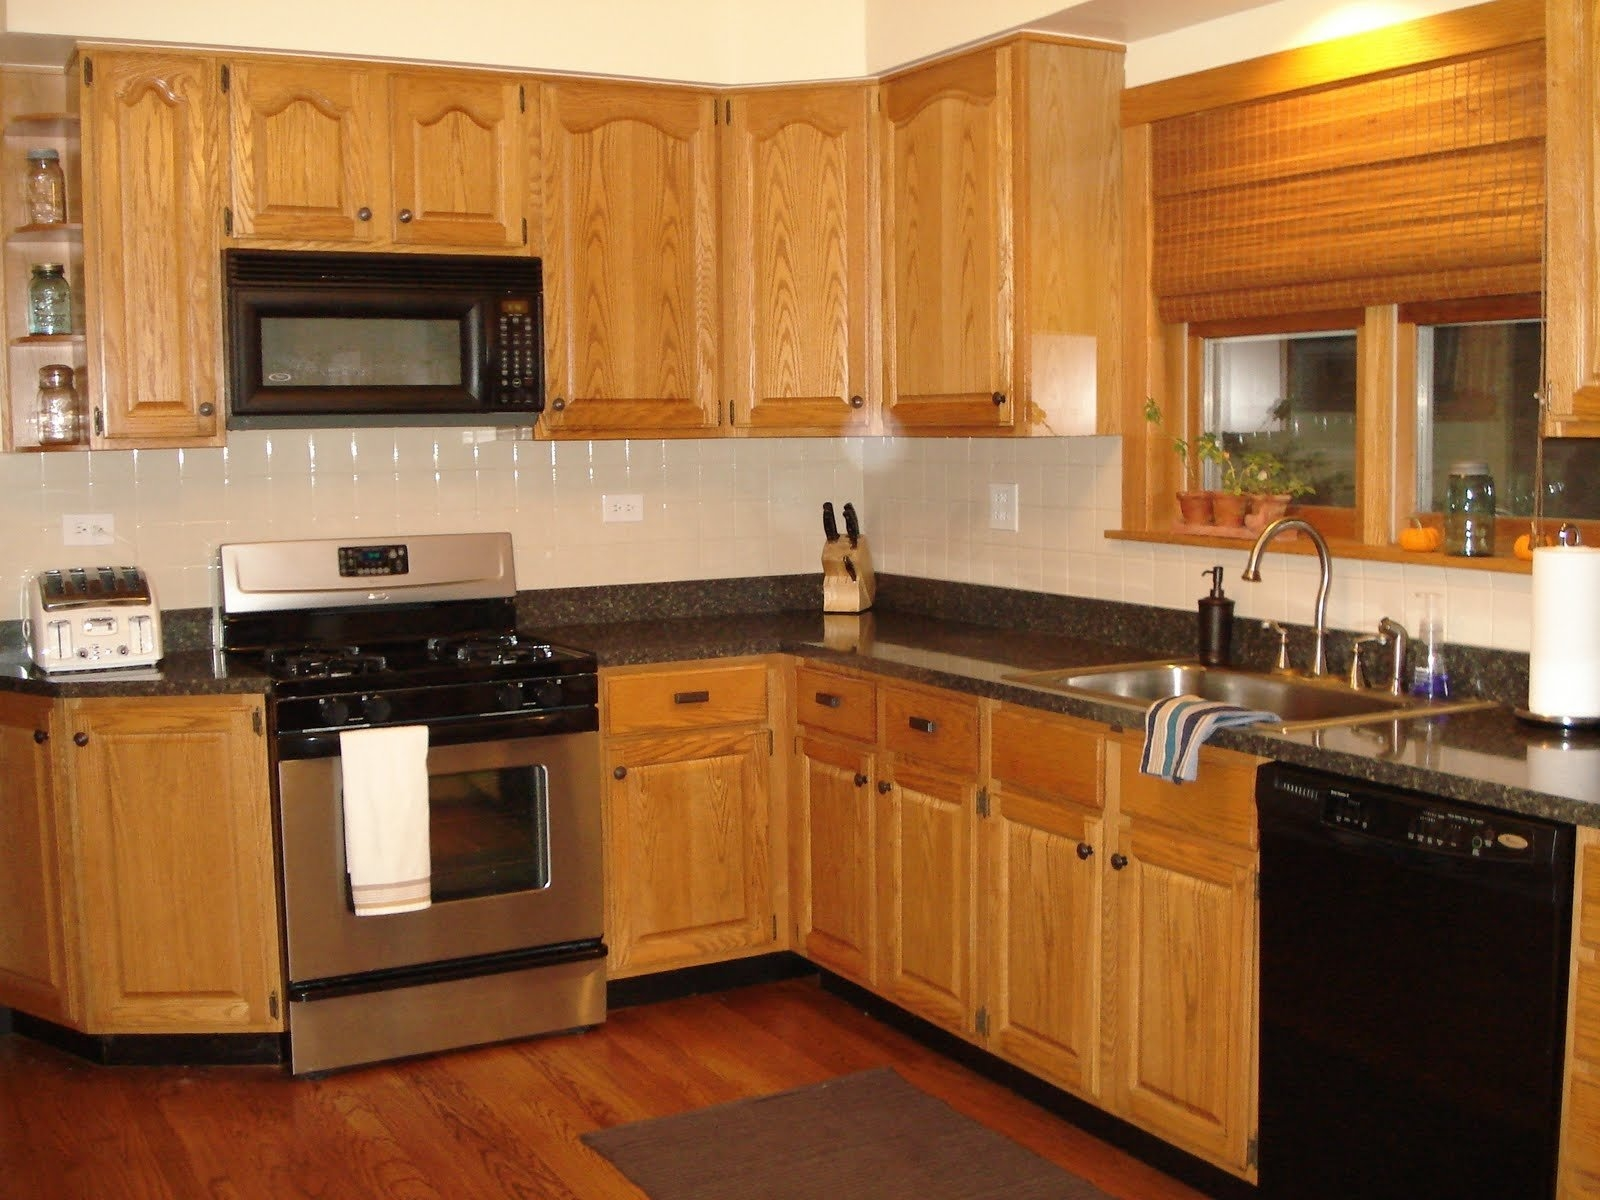 Kitchen Remodel Ideas With Light Oak Cabinets